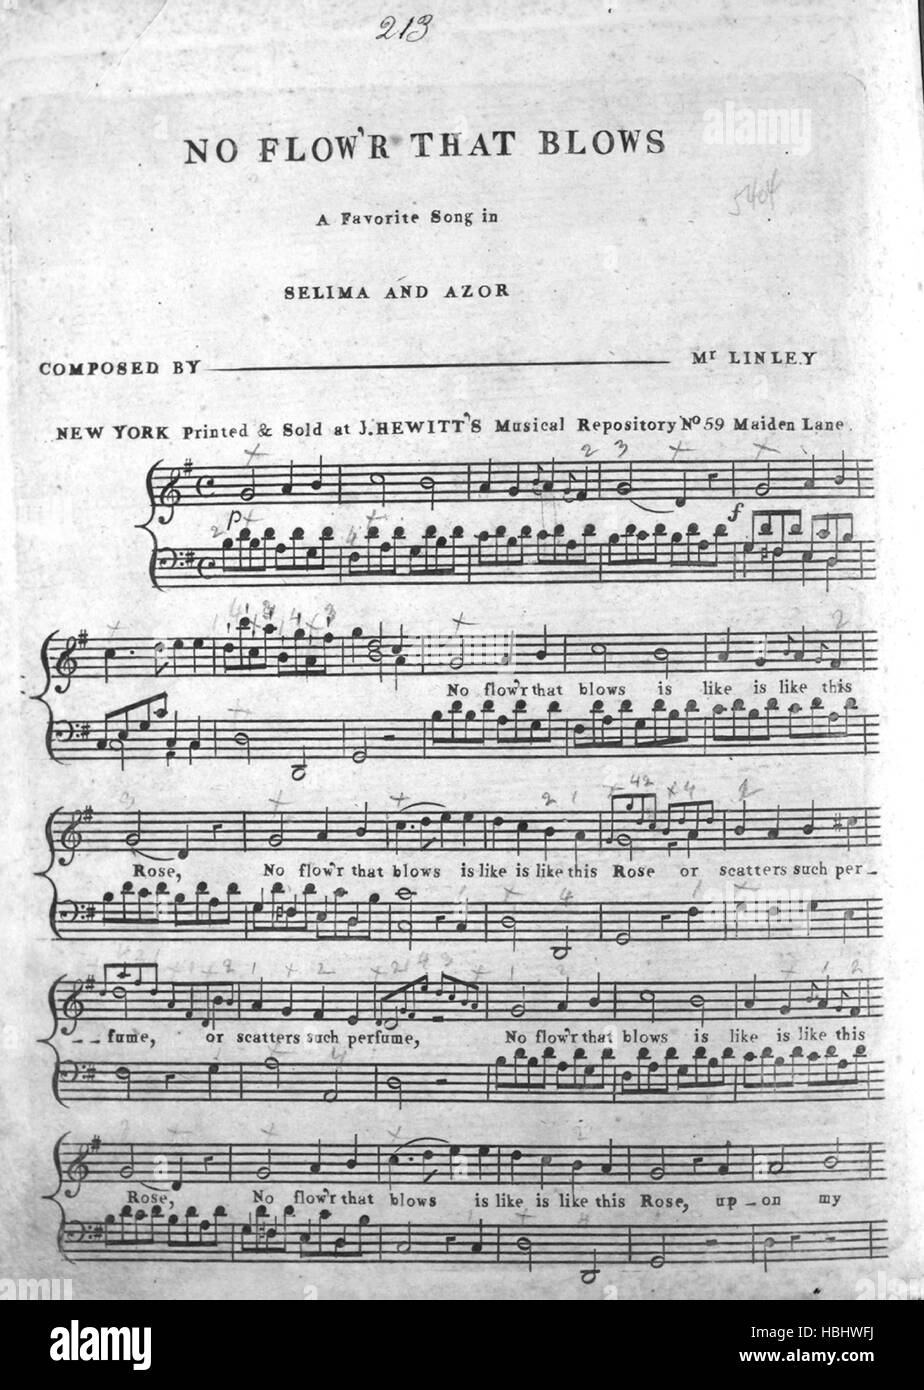 Sheet music cover image of the song 'No Flow'r That Blows A Favorite Song in Selima and Azor', with original authorship Stock Photo